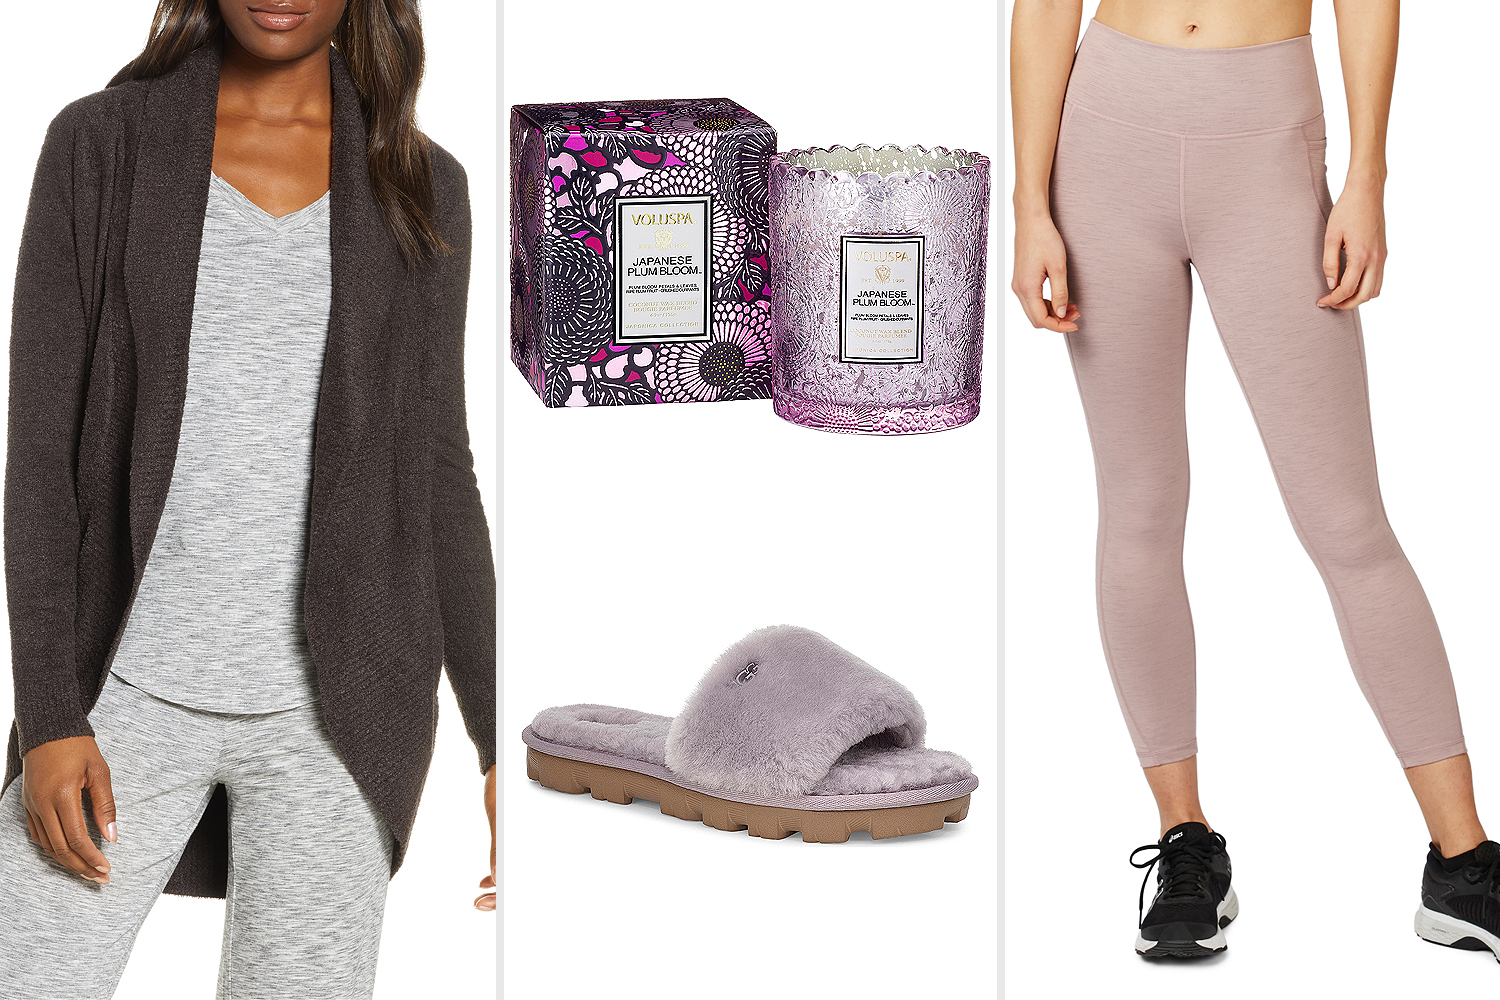 Nordstrom Comfy Sale Finds